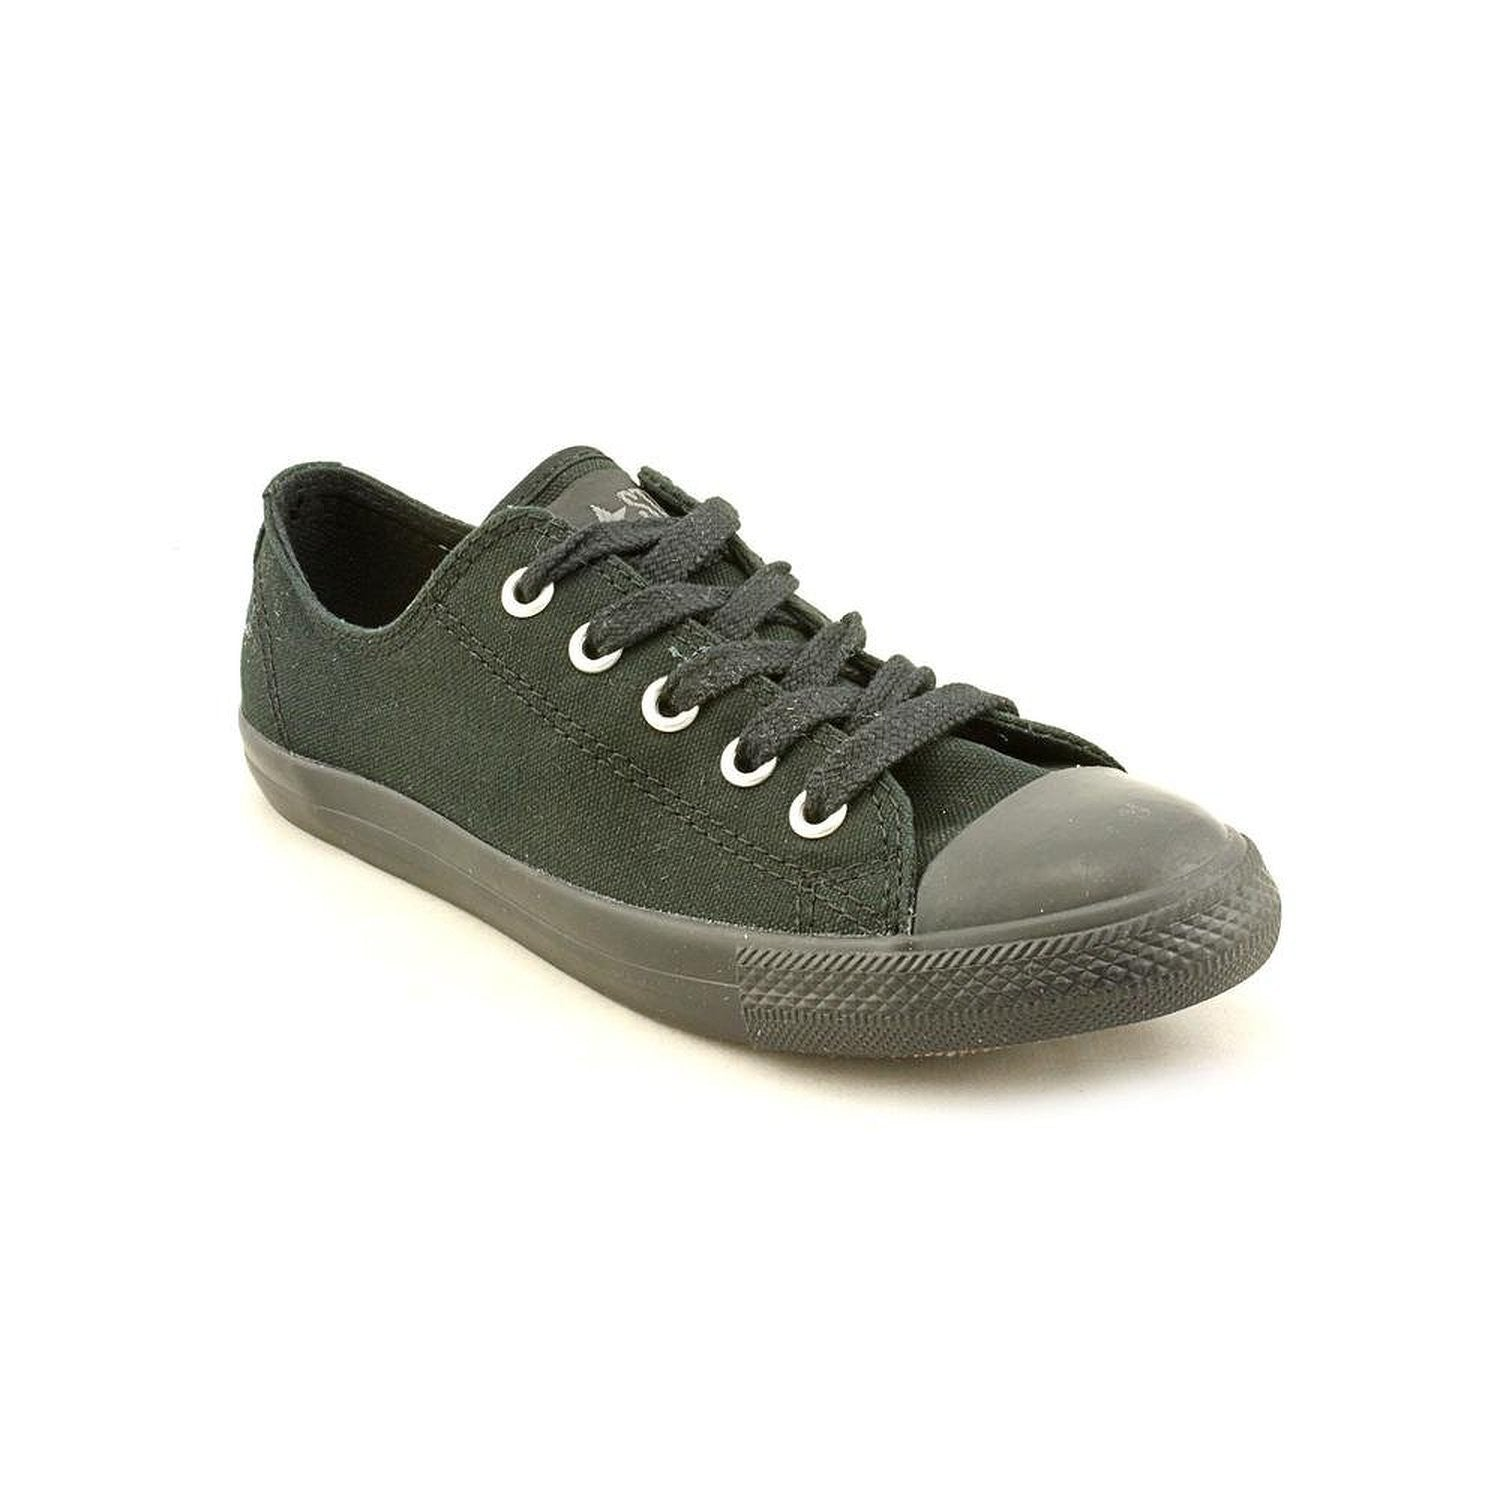 63da5f57bb30ce Converse CT AS Dainty OX Fashion Sneakers Casual Shoes - Womens -  Shoplifestyle